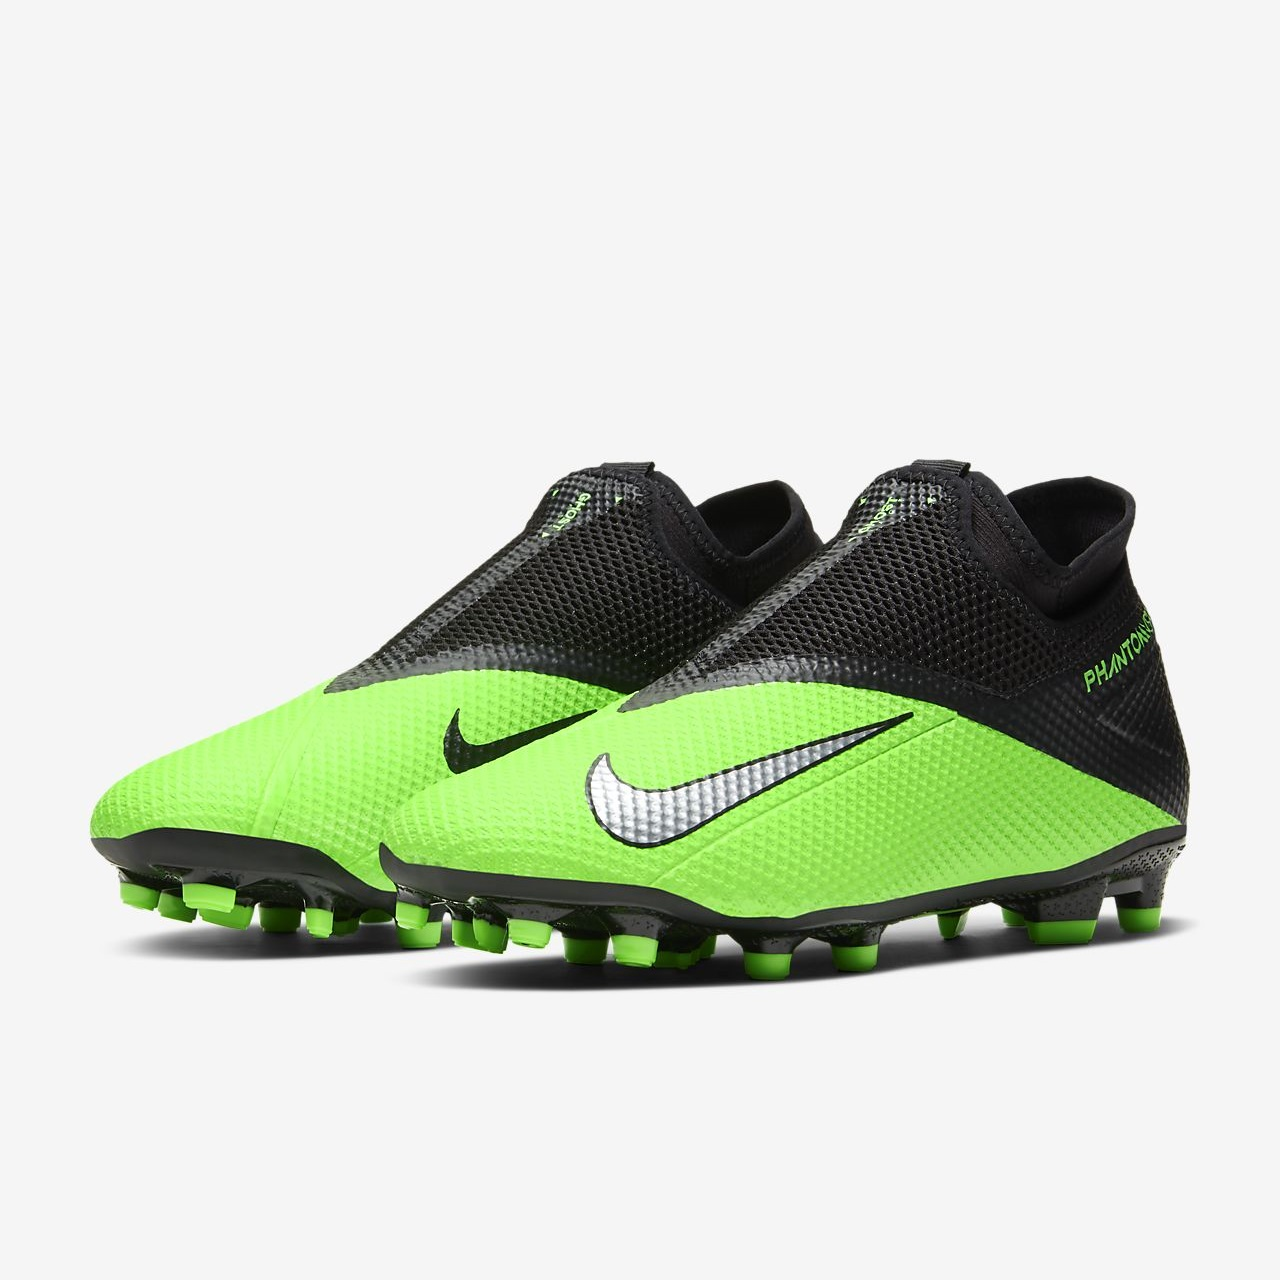 NIKE PHANTOM VSN 2 ACADEMY DF FG/MG CD4156-306